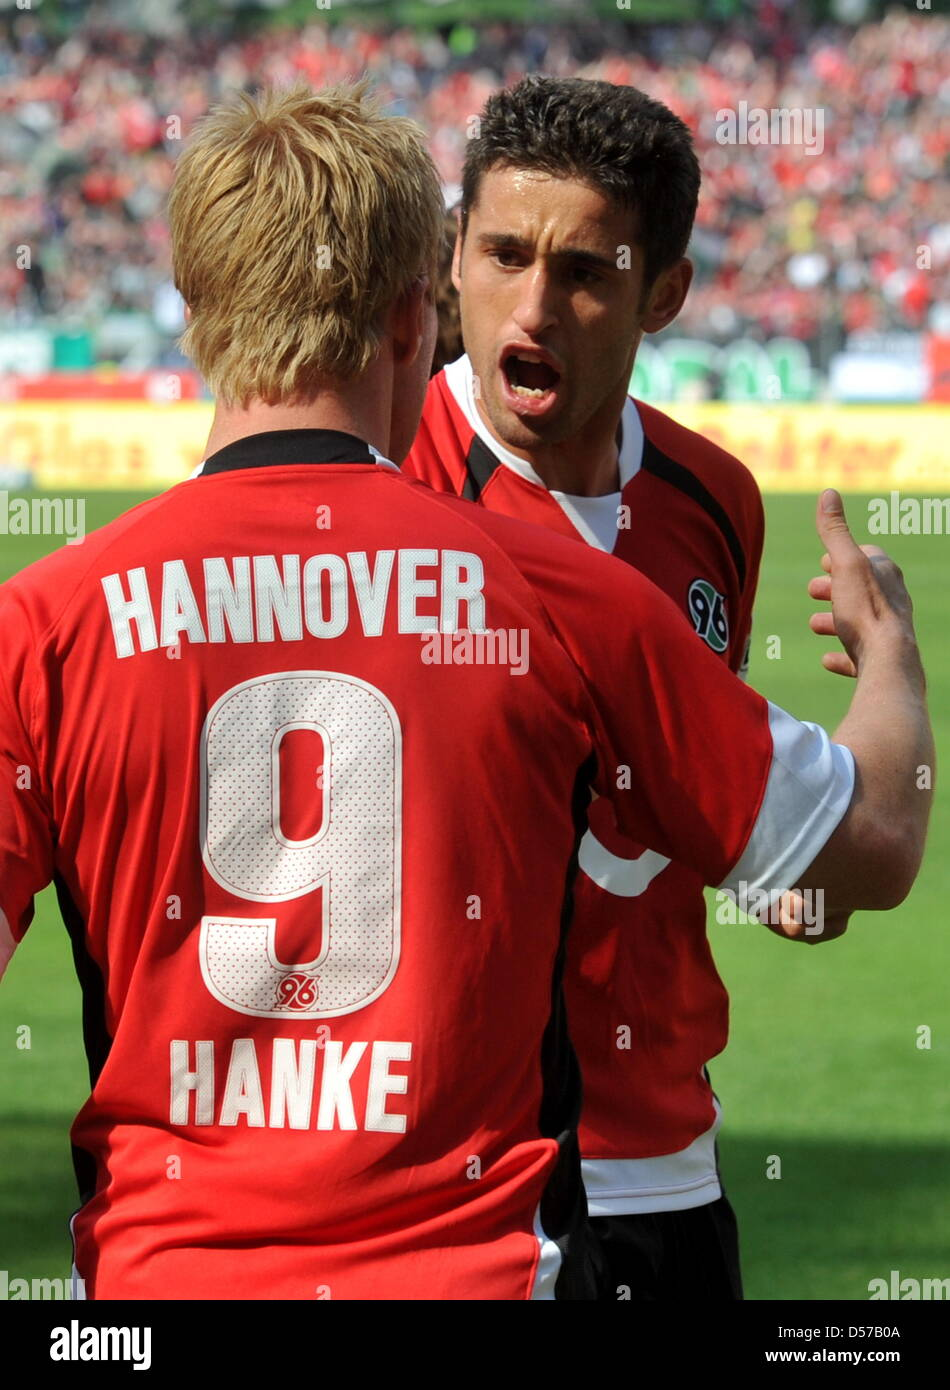 Hanover's Mike Hanke (L) and Karim Haggui cheer after Haggui's goal to the score 1-0 during German Bundesliga match Stock Photo